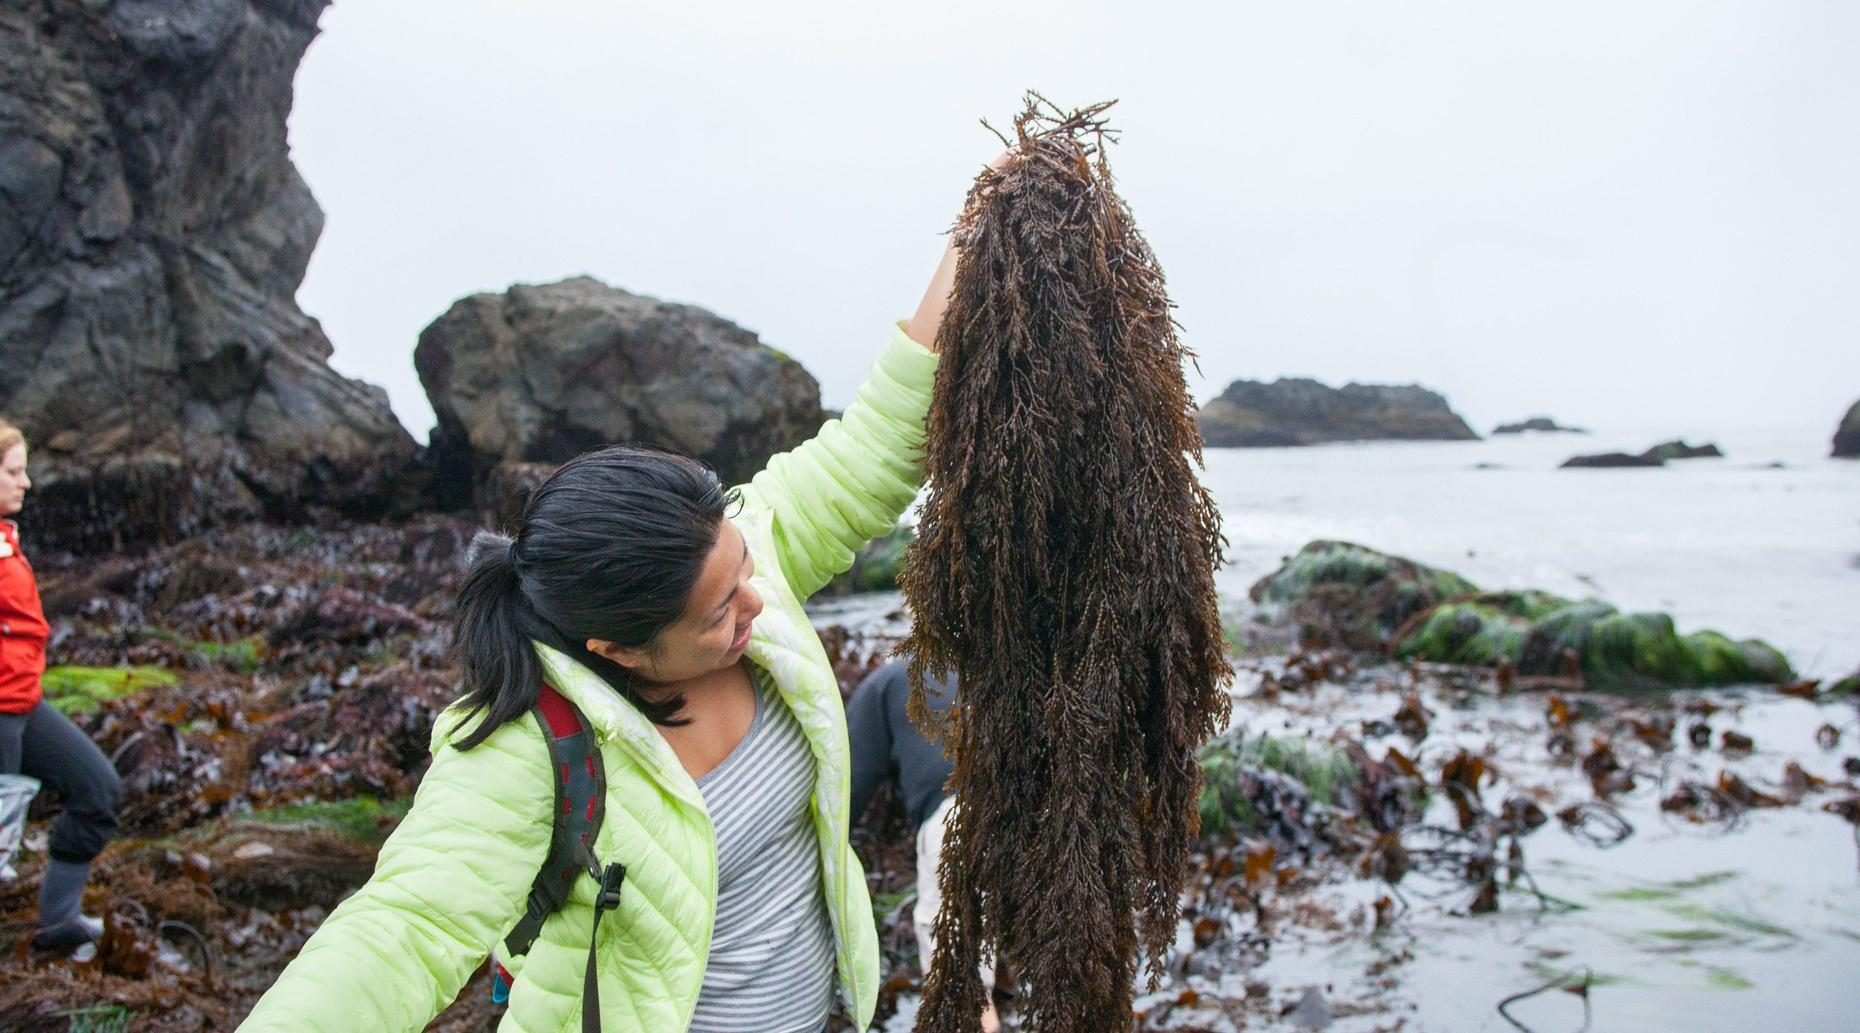 Two-Hour Sonoma Seaweed Foraging Class